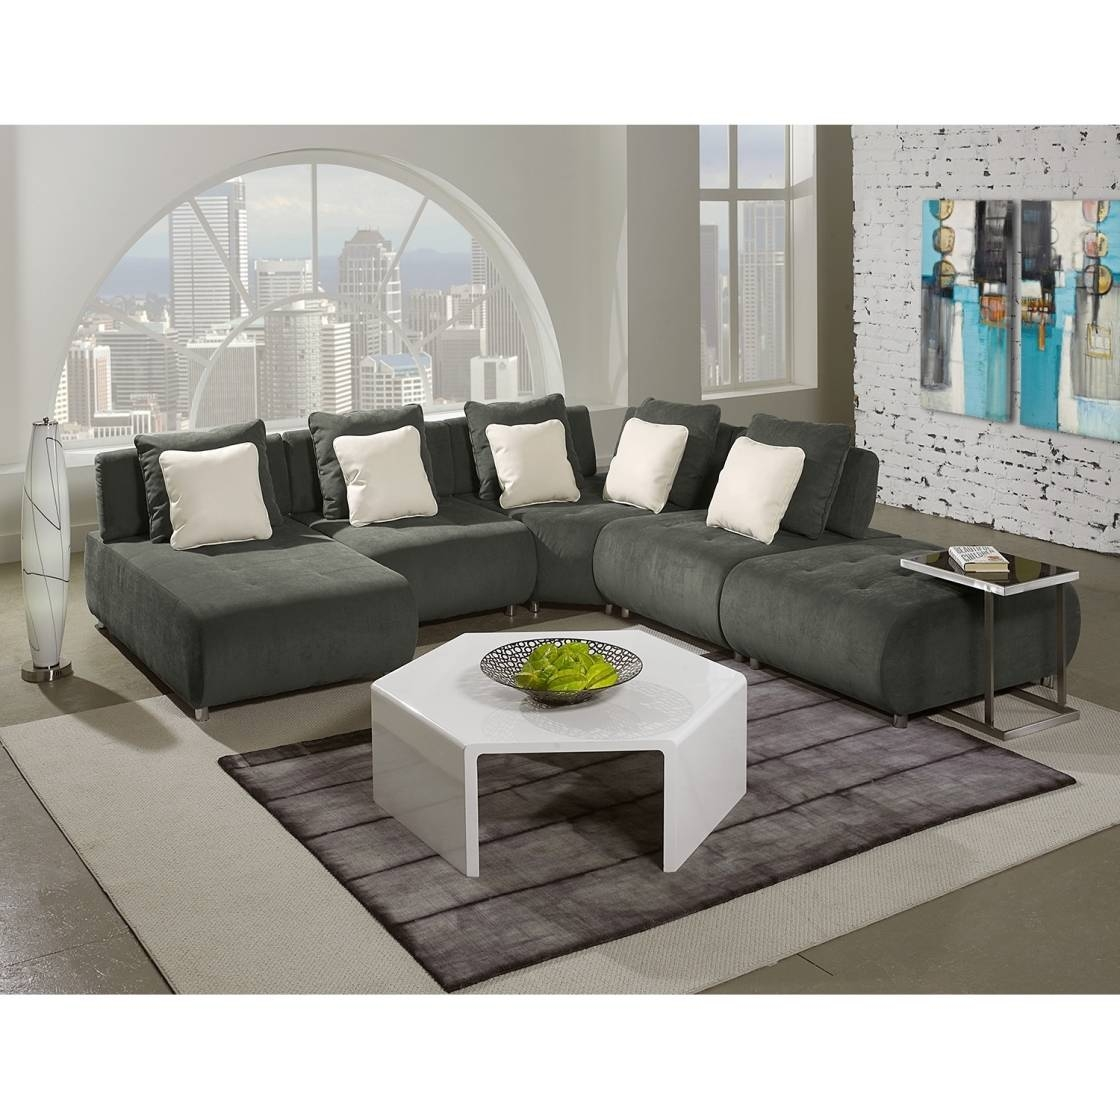 Sectional Sofa For Small Spaces. 38 Small Yet Super Cozy Living throughout Sectional Sofas in Small Spaces (Image 15 of 25)